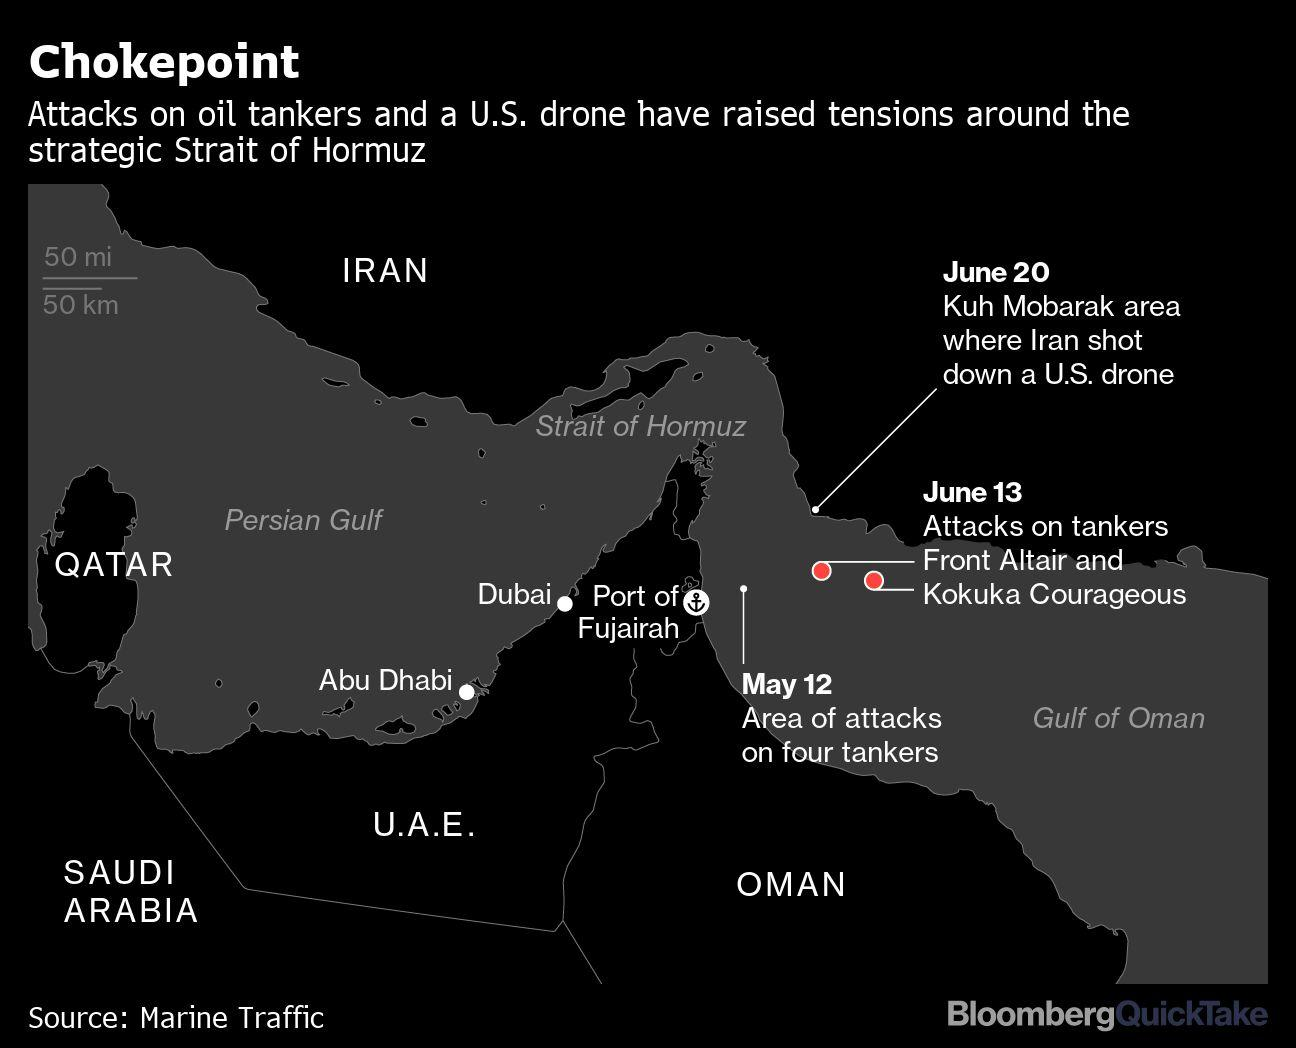 Taken to Brink by Trump, Gulf States Are Backpedaling on Iran